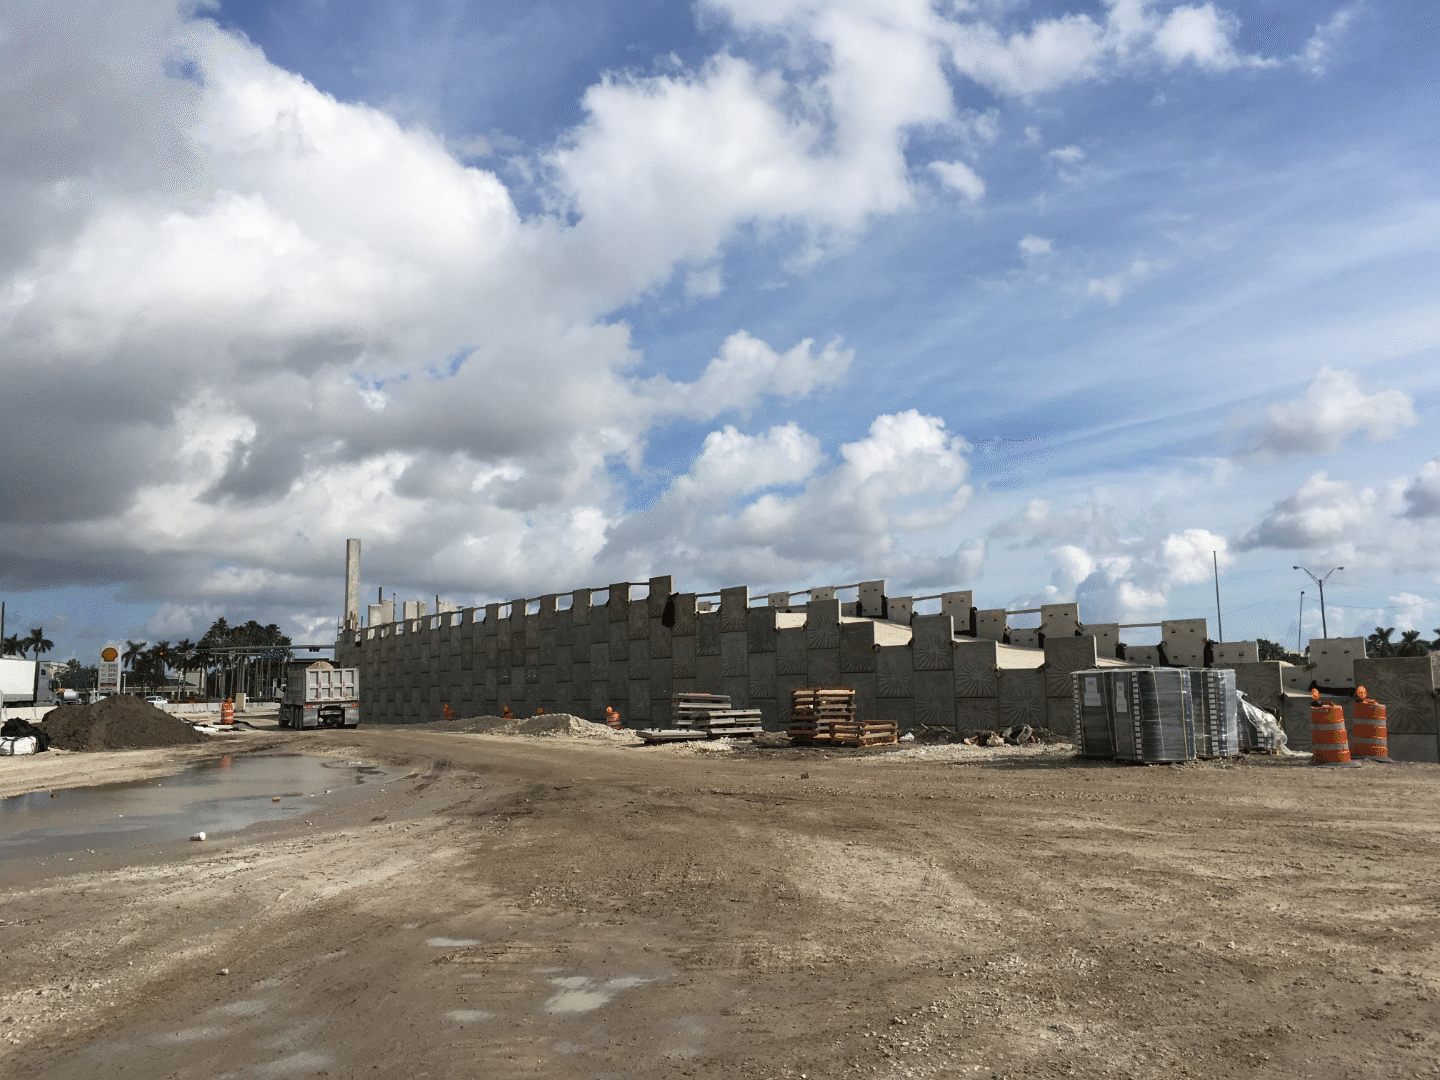 Construction of the new flyover ramp to westbound SR 836 from NW 12th  Street is now underway and the structure is beginning to take shape.